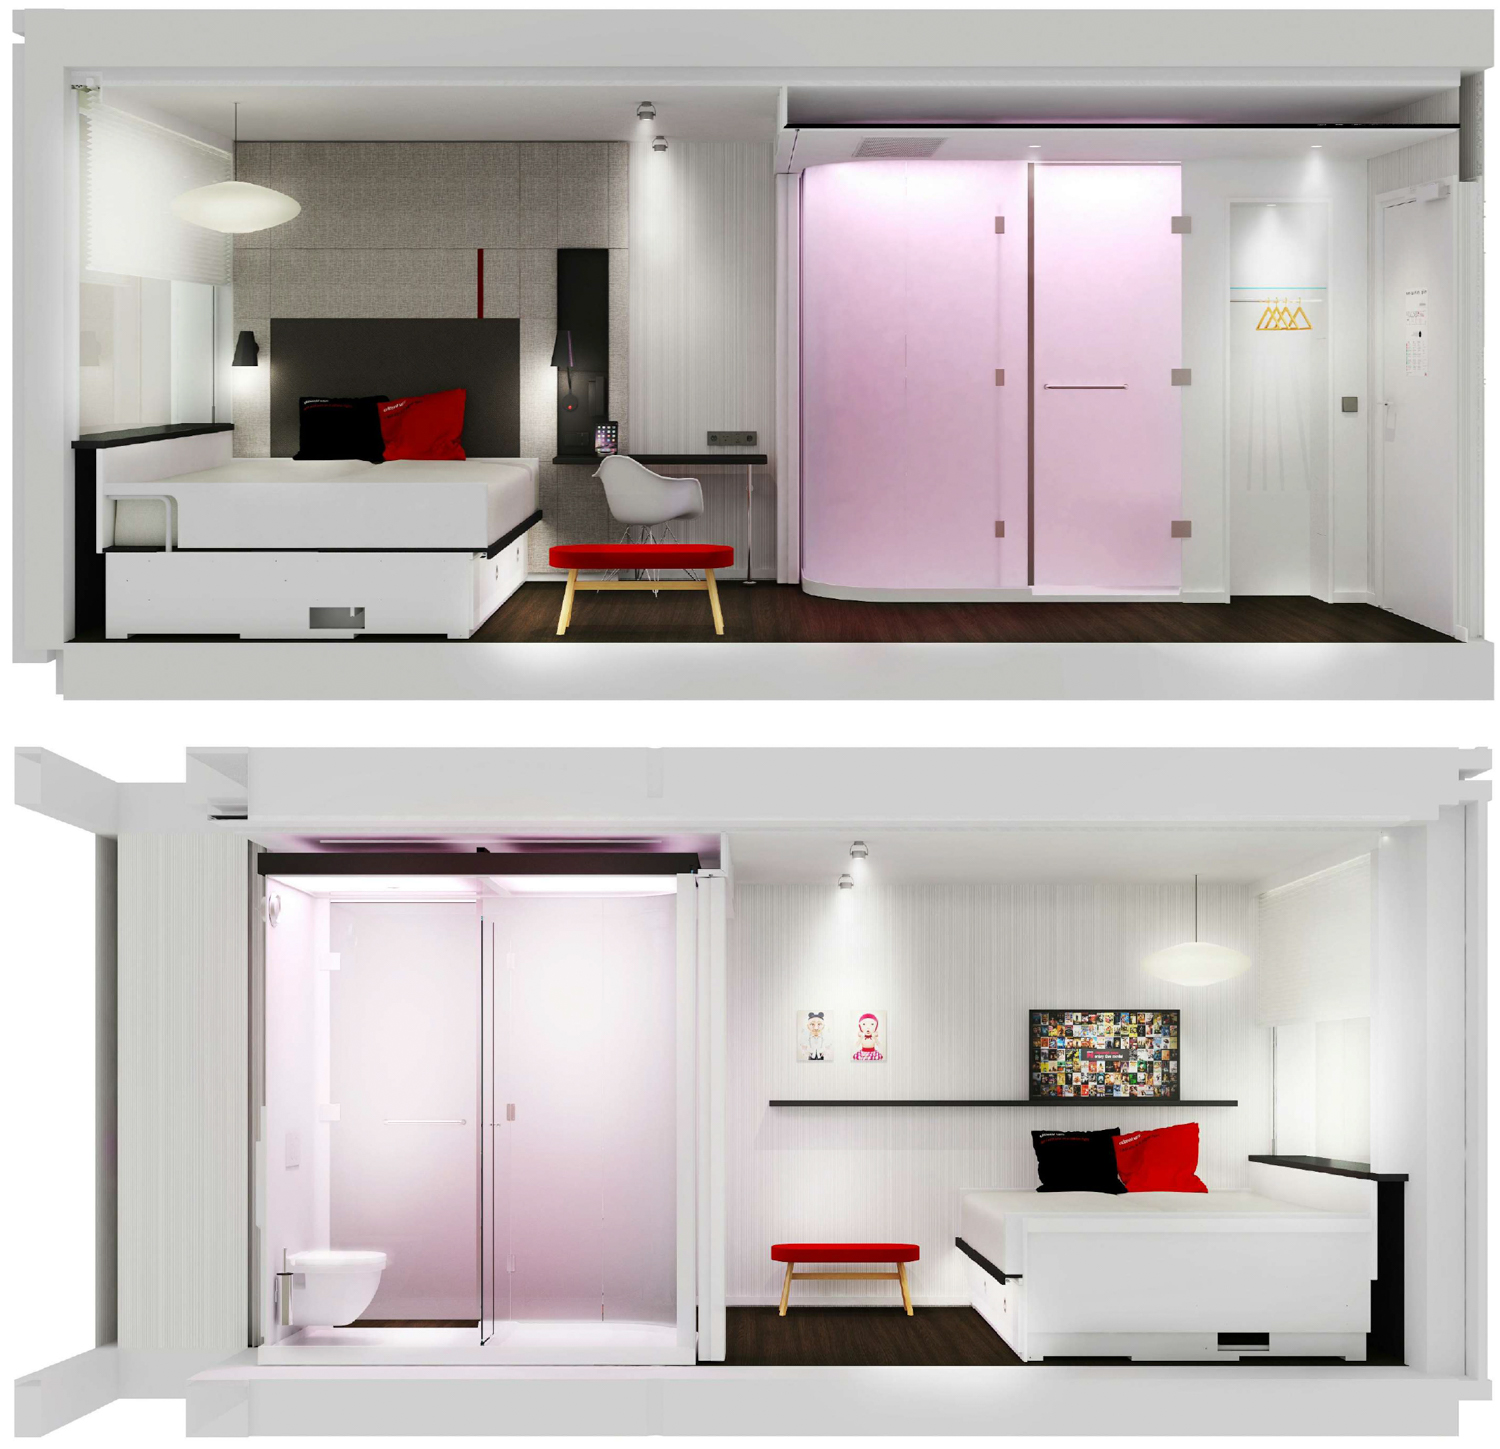 CitizenM Hotel at 3 Facebook Way street mock-up of guest rooms, design by Gensler